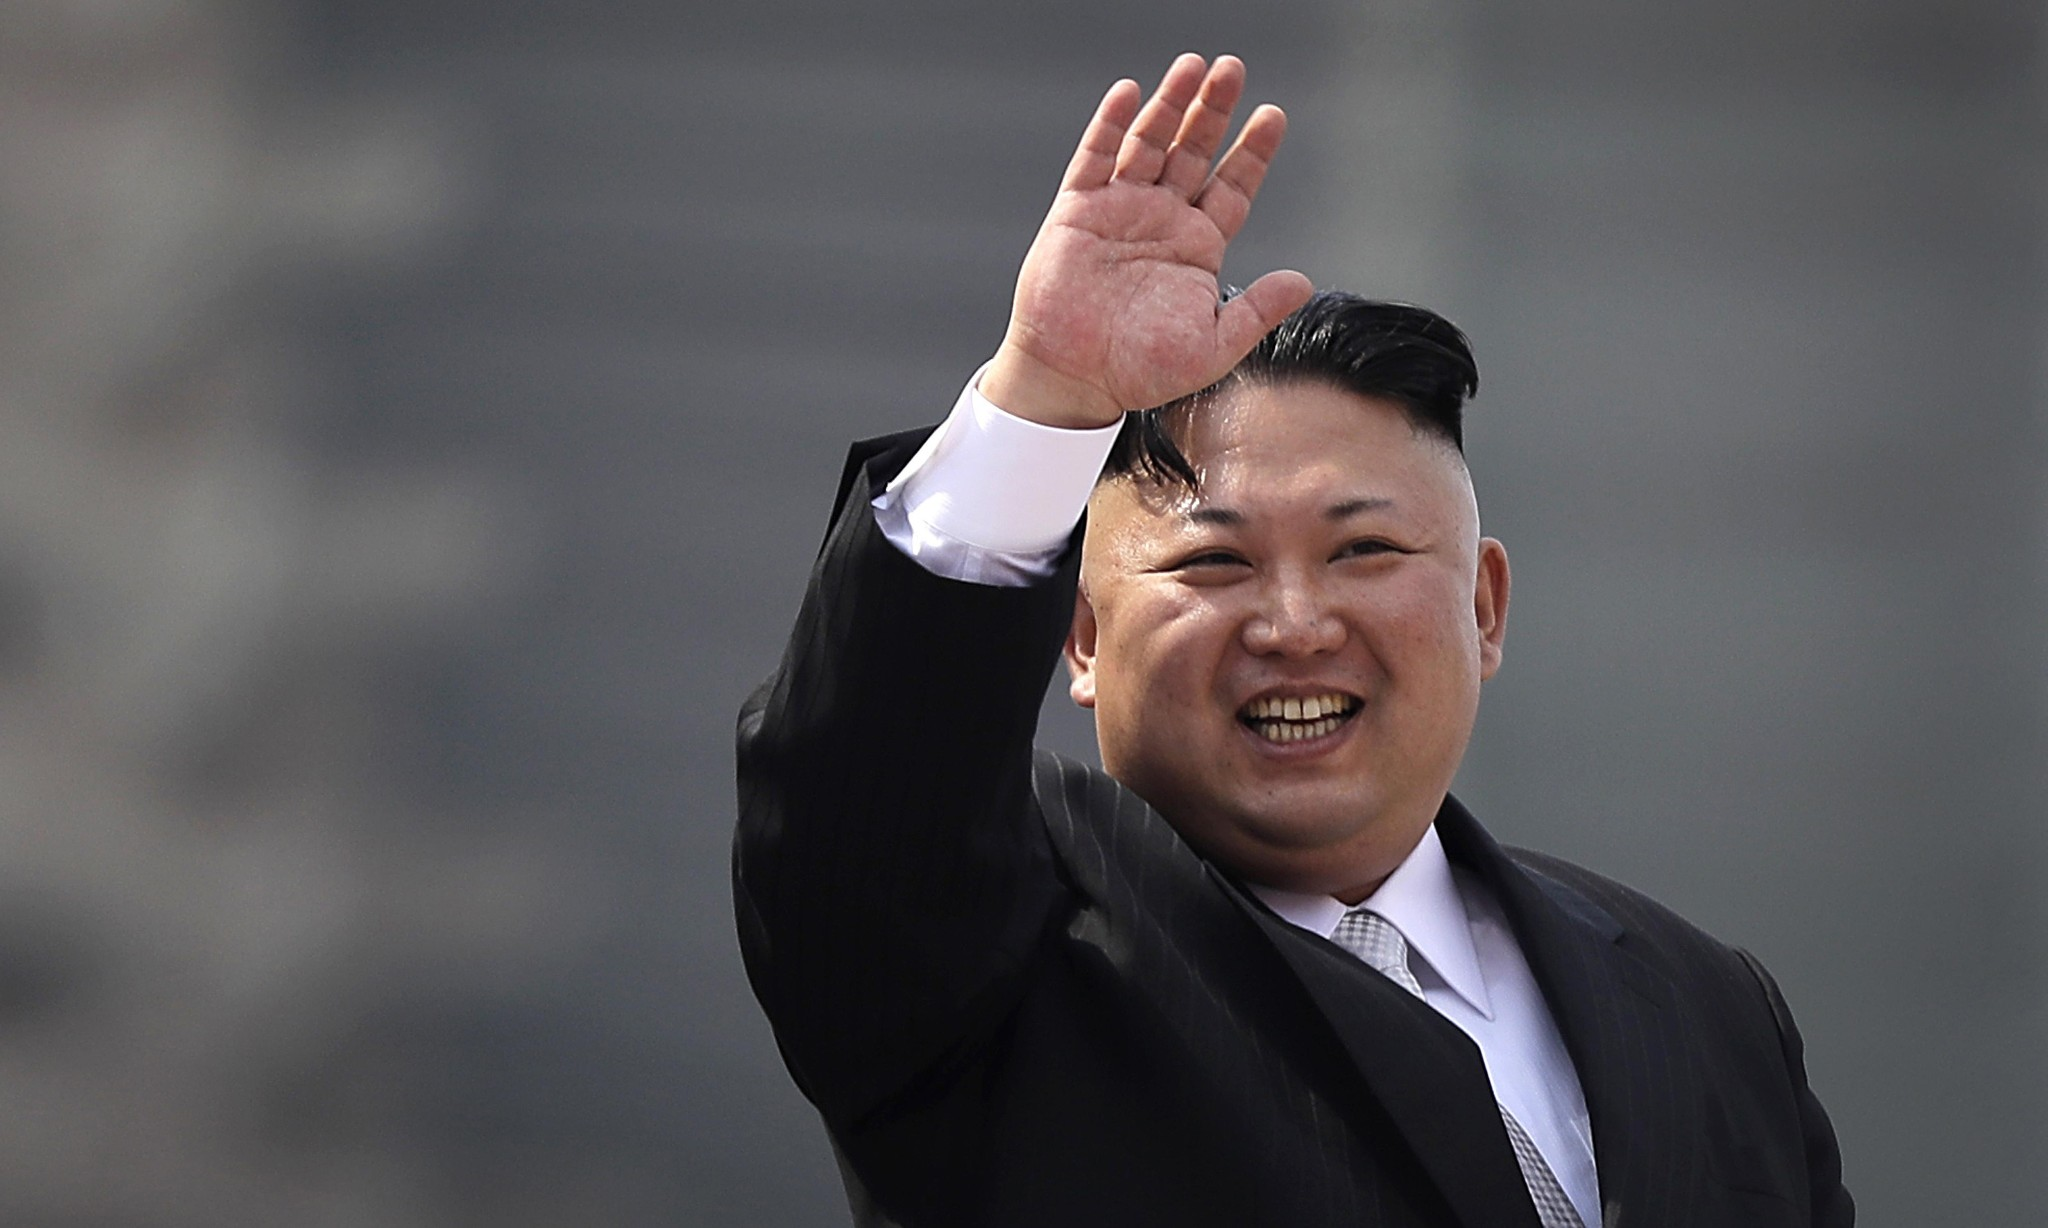 North Korea accuses CIA of biochemical plot to kill Kim Jong-un